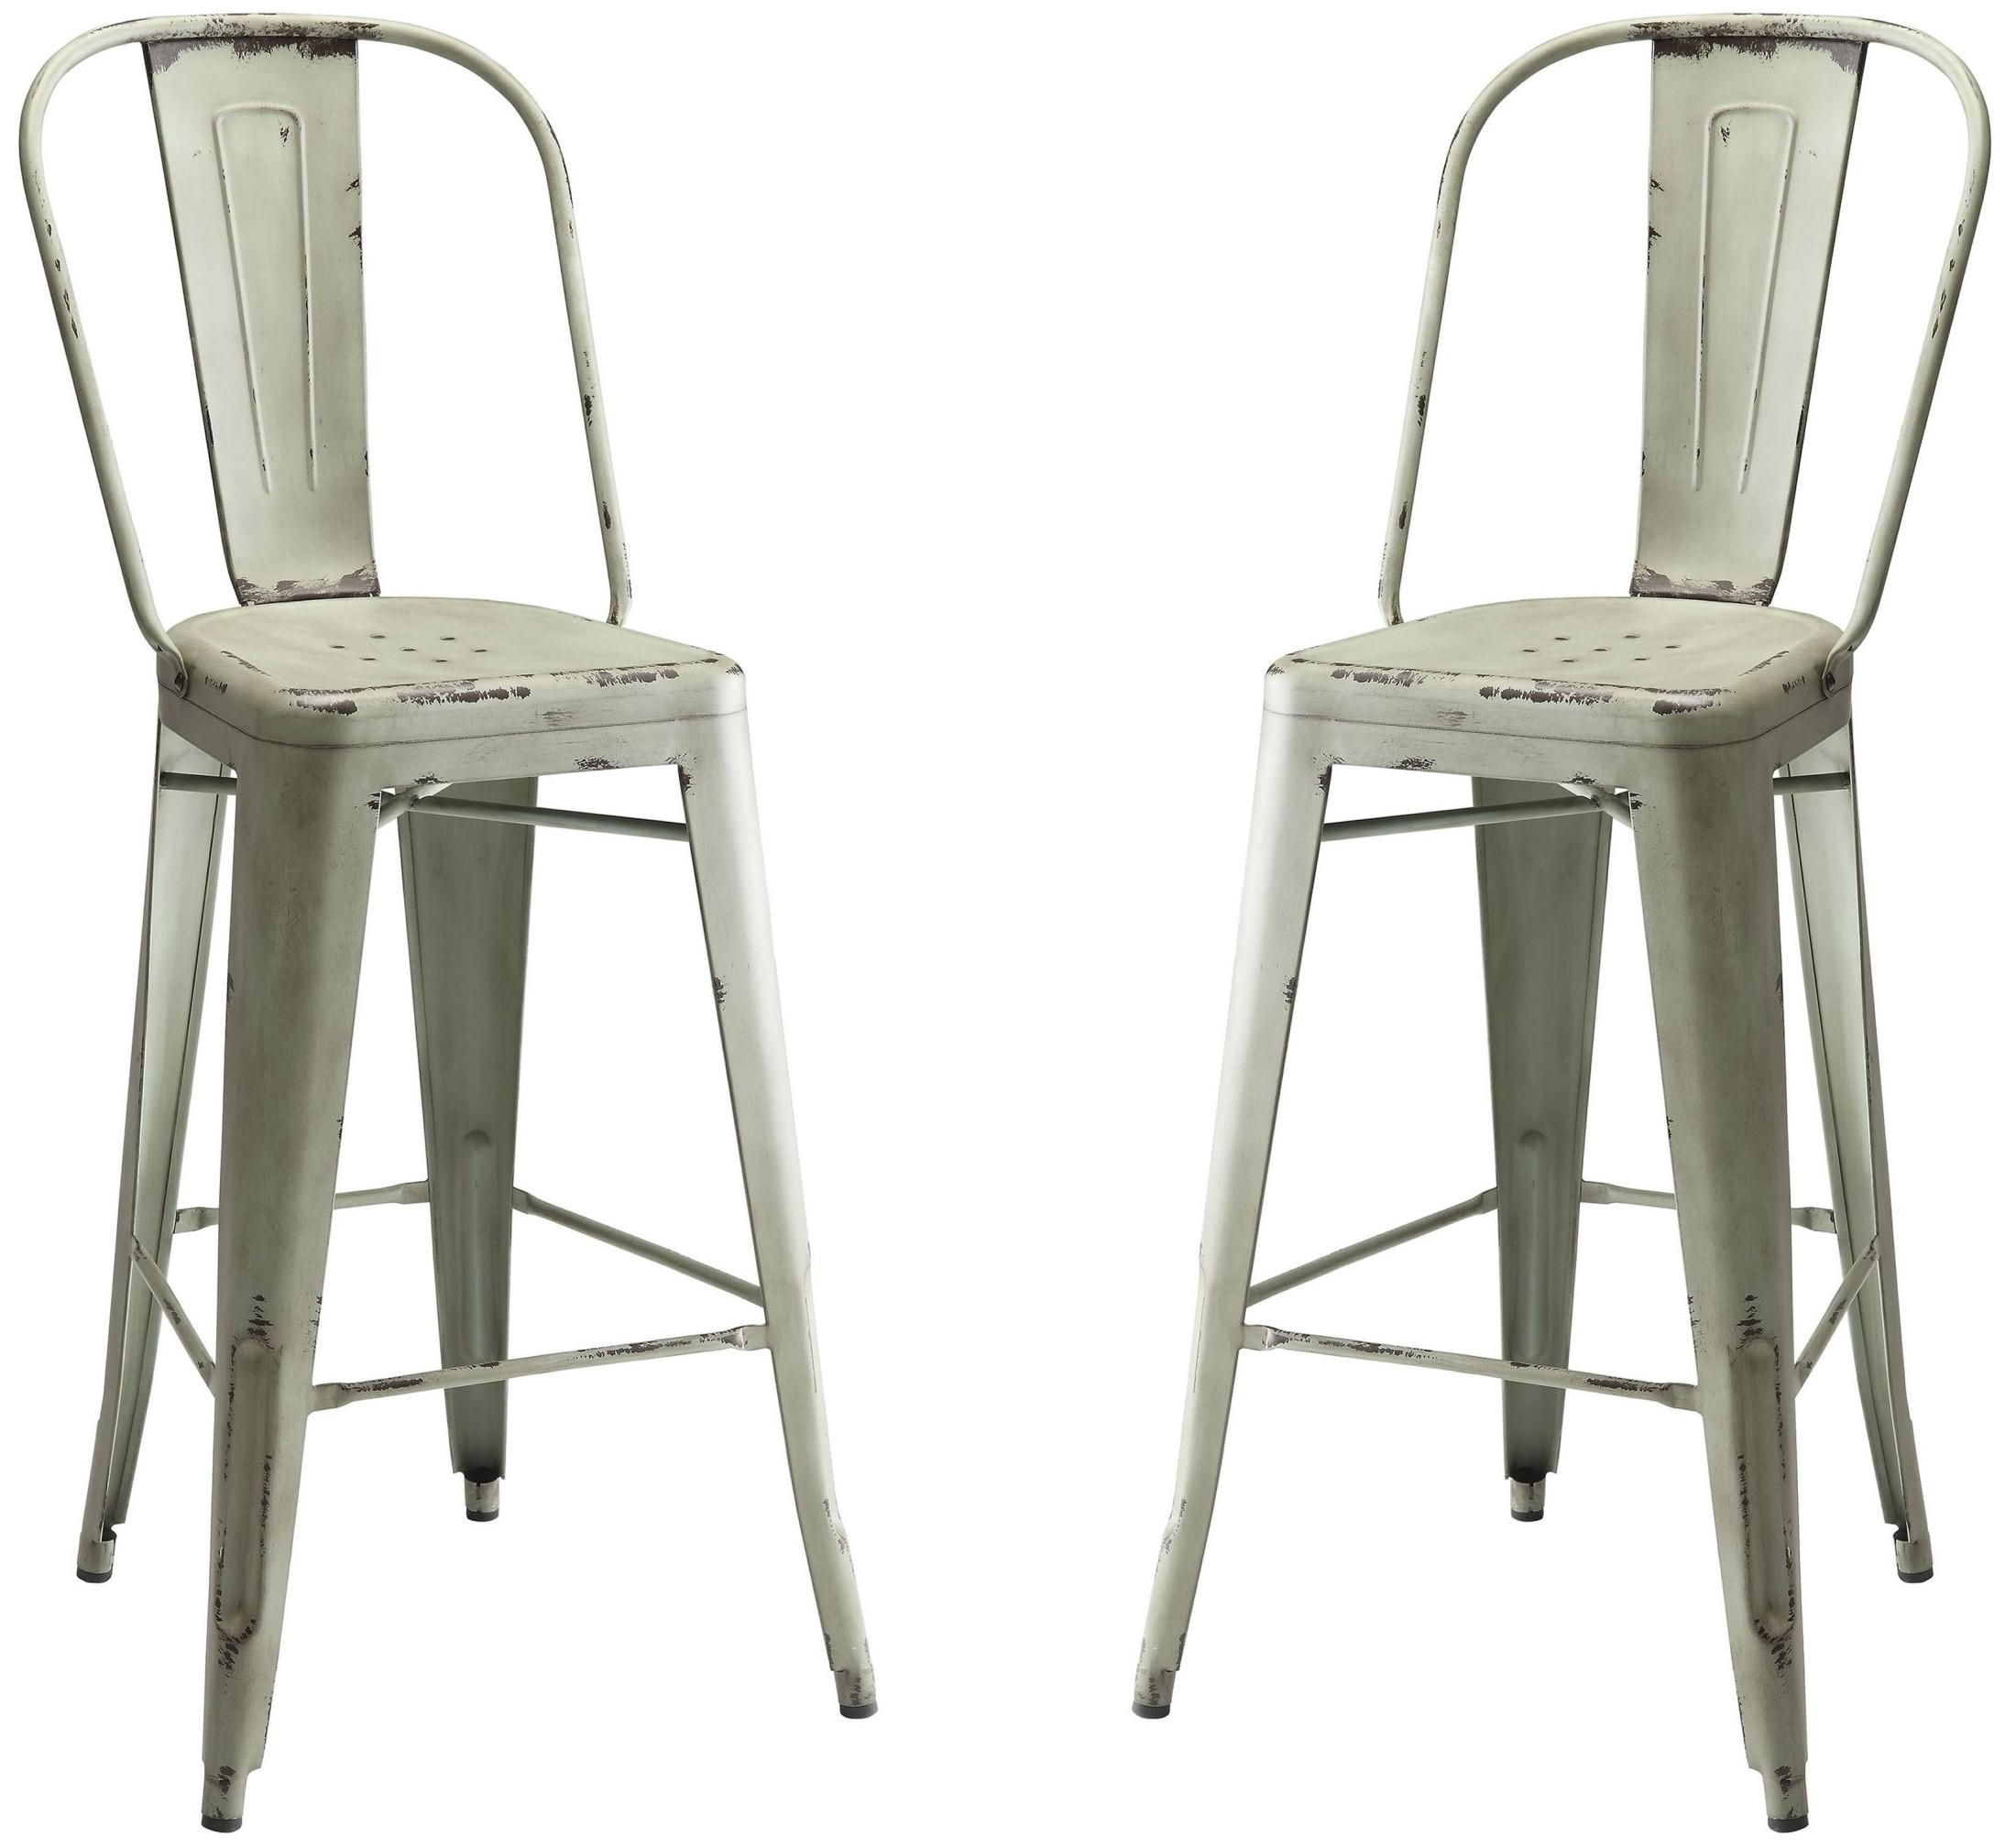 Blue Metal Bar Stool Set of 2 from Coaster Coleman Furniture : 106014 b1 from colemanfurniture.com size 2200 x 2017 jpeg 328kB